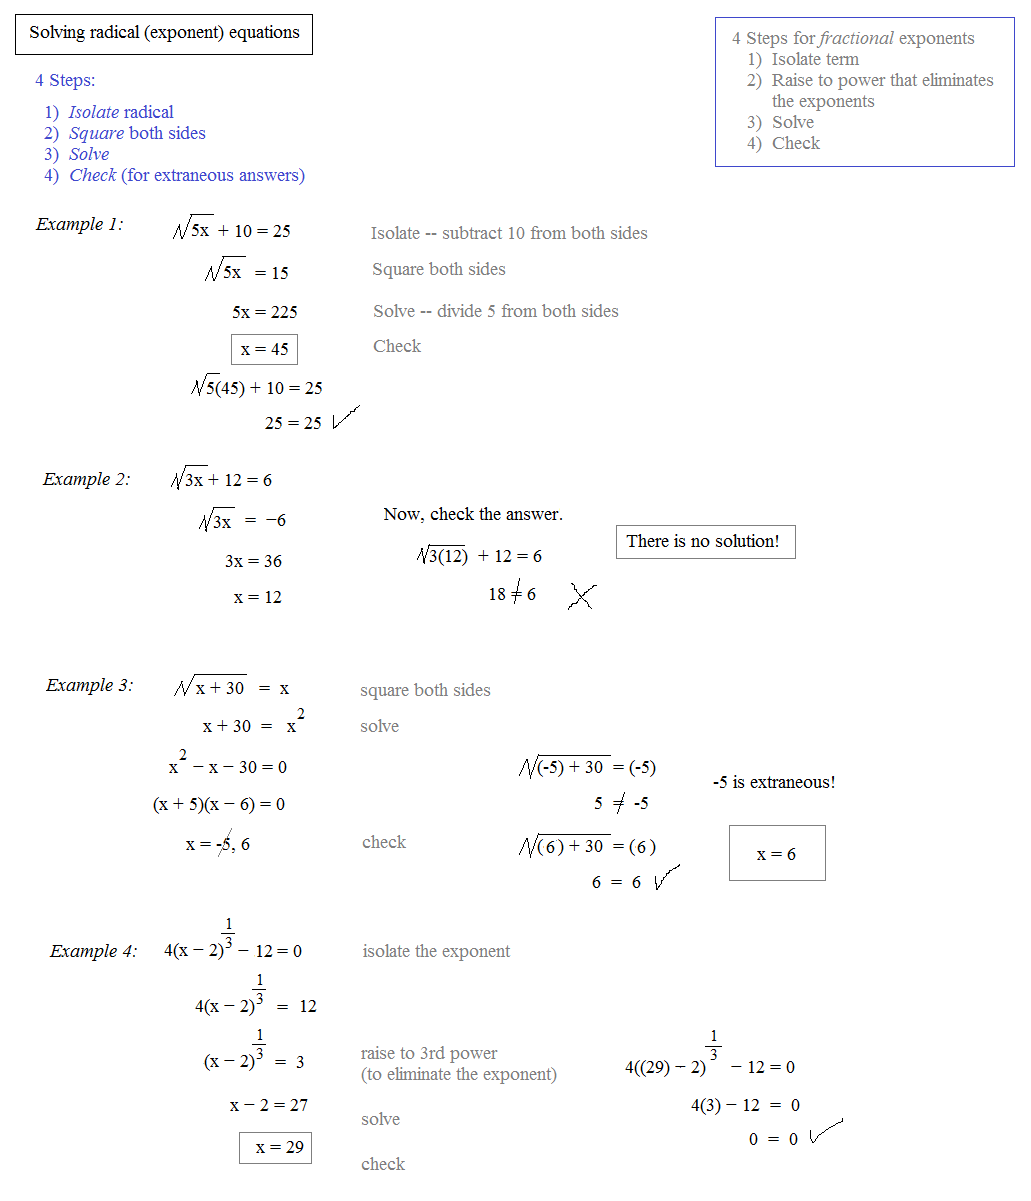 solving exponential equations worksheet - streamclean.info